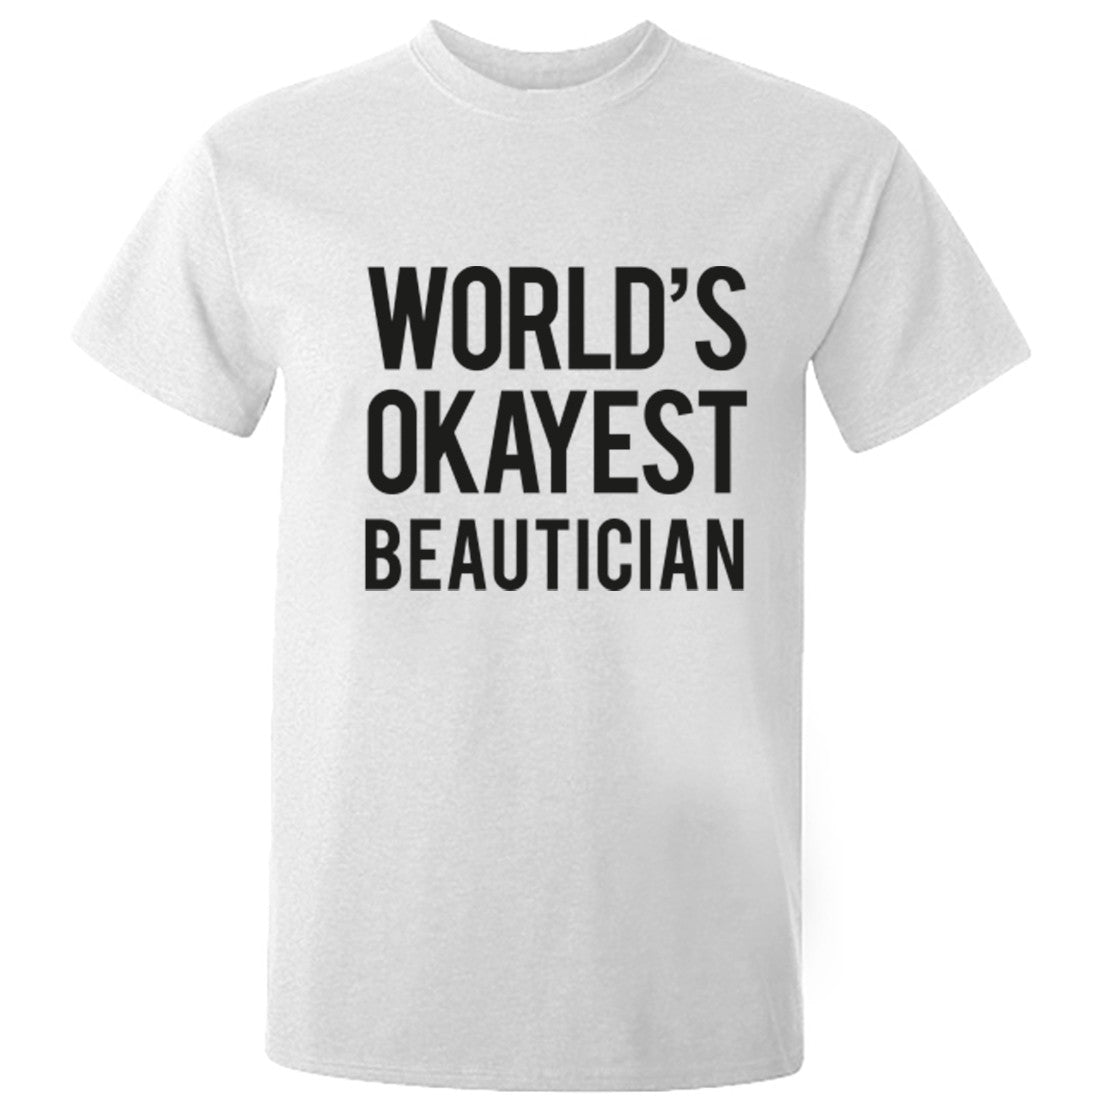 Worlds Okayest Beautician Unisex Fit T-Shirt K0497